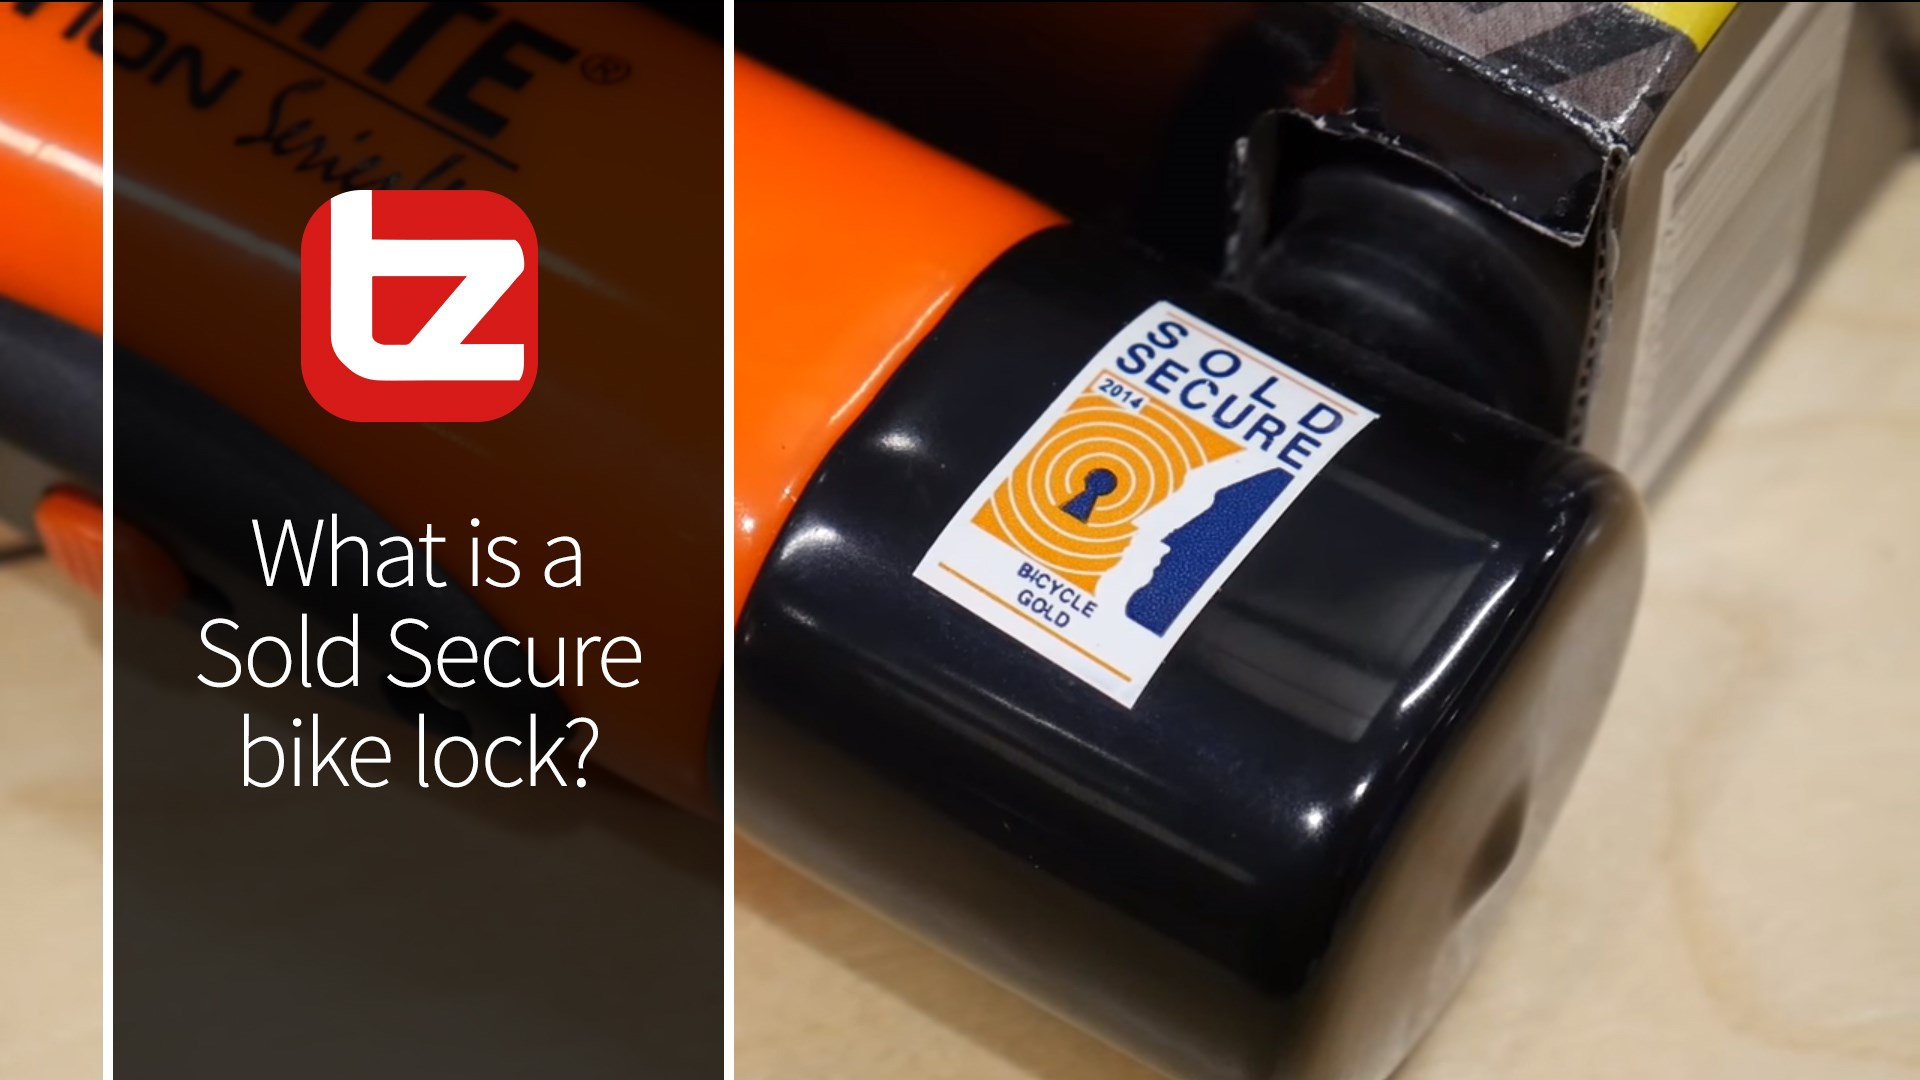 What is a Sold Secure bike lock?